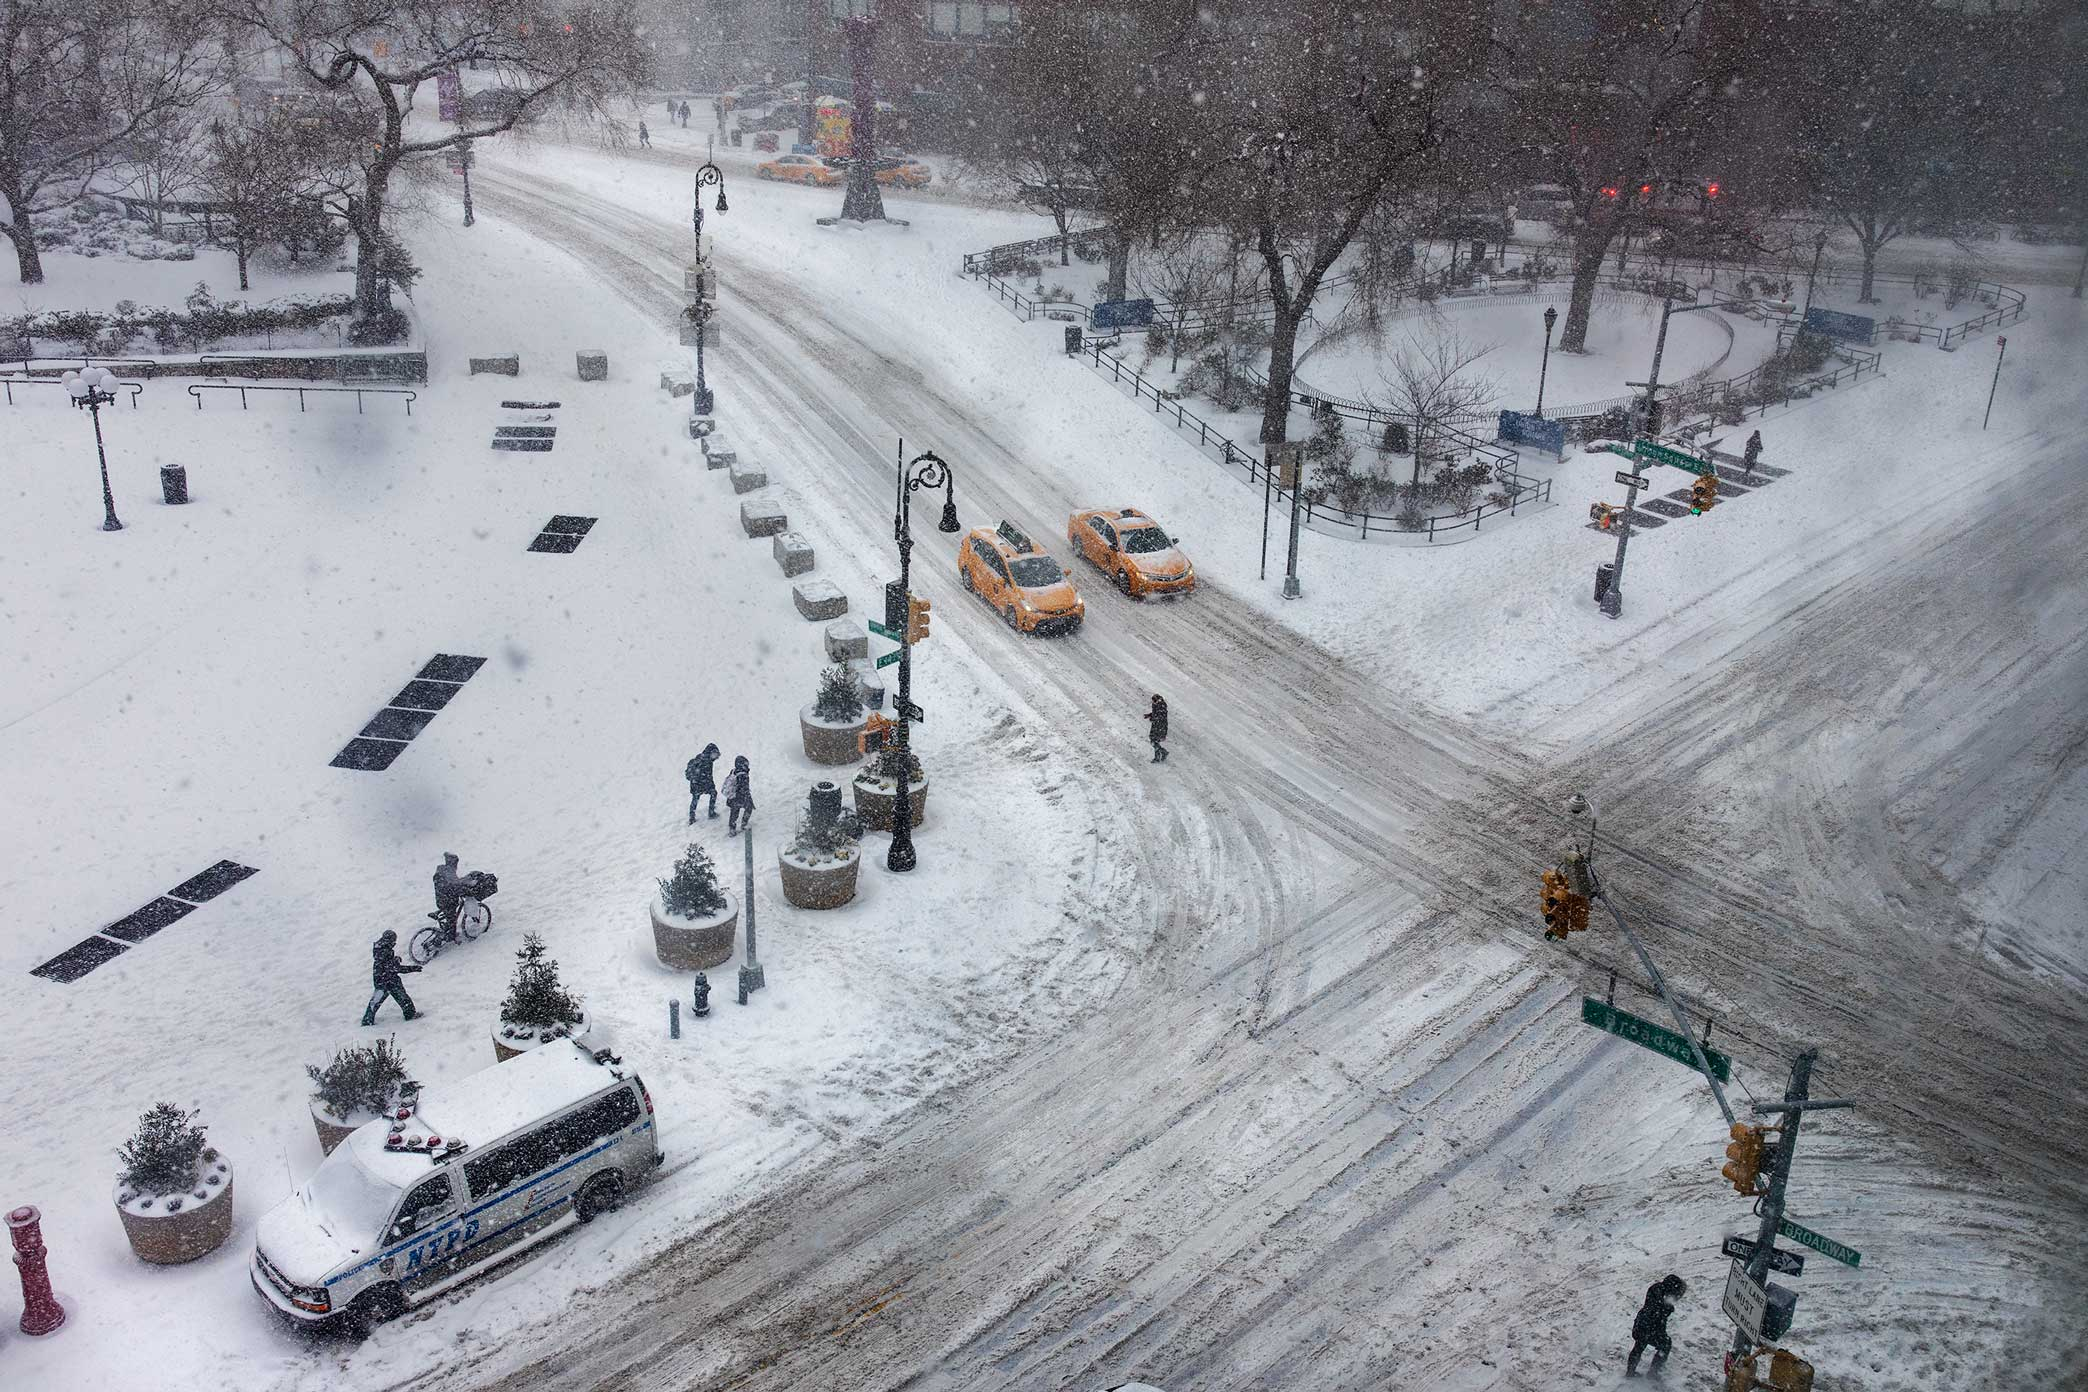 Union Square Park. NYC Snow Storm. Manhattan, NY. 2018